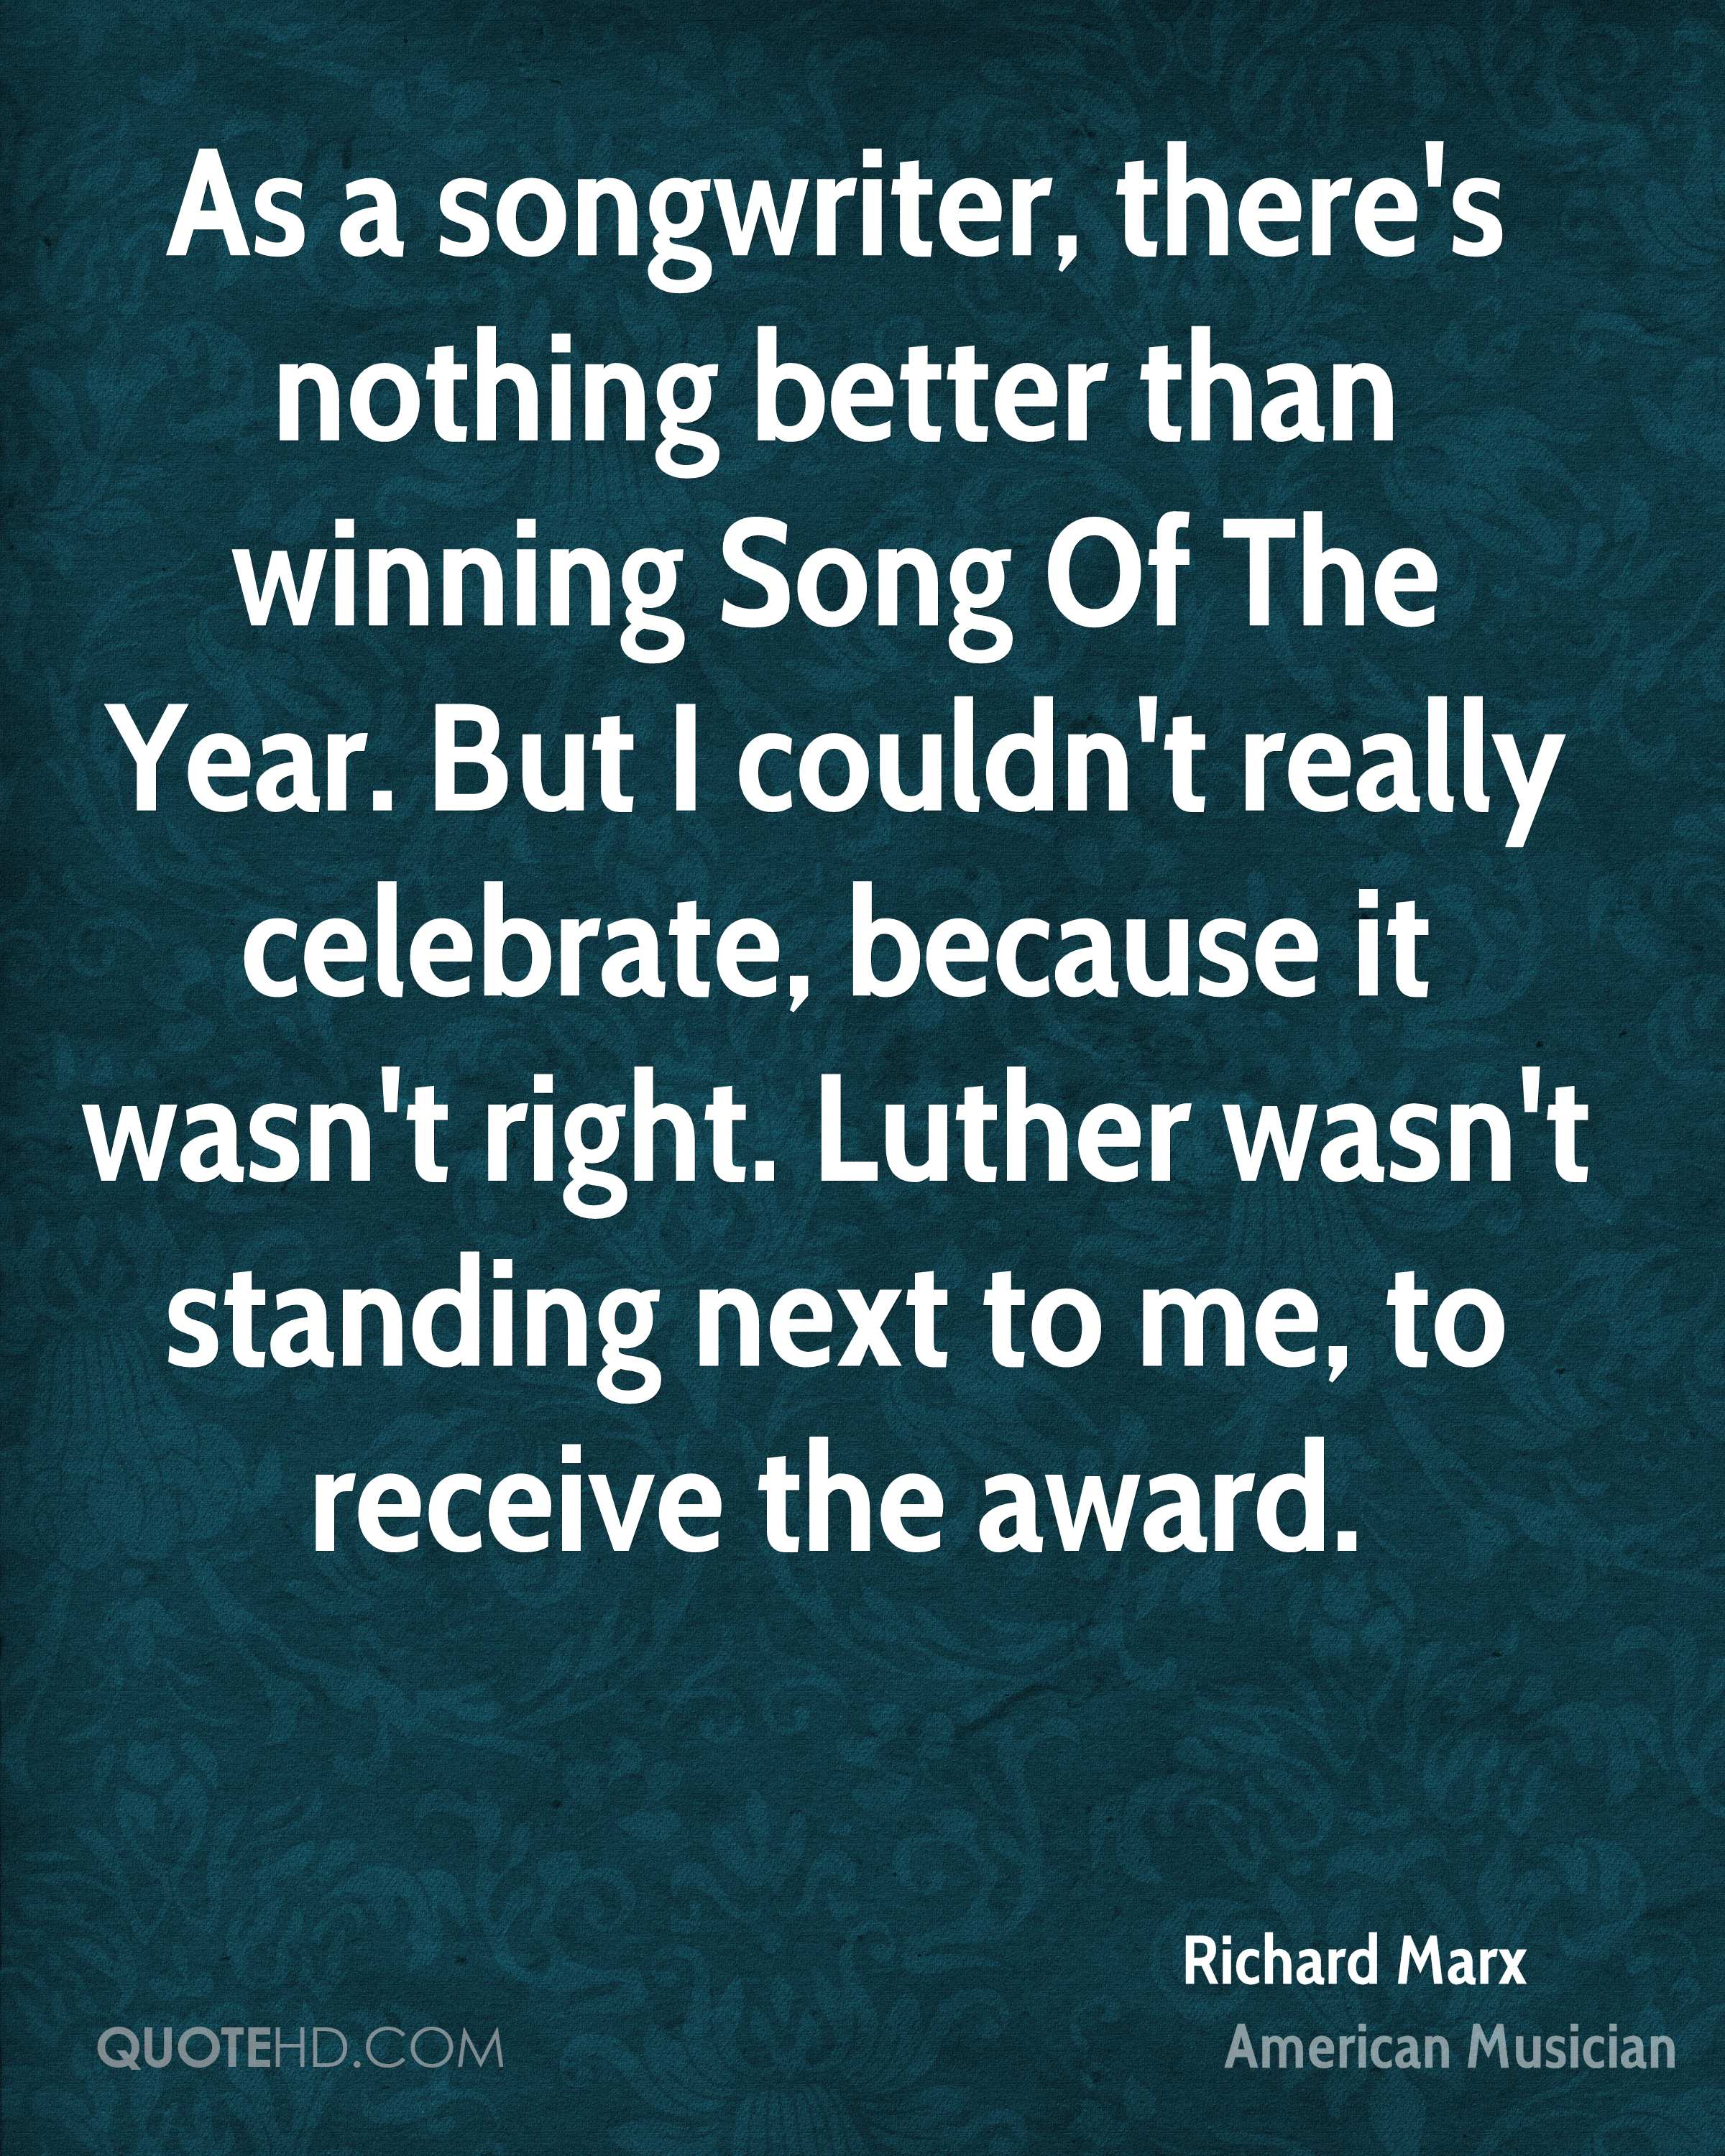 As a songwriter, there's nothing better than winning Song Of The Year. But I couldn't really celebrate, because it wasn't right. Luther wasn't standing next to me, to receive the award.